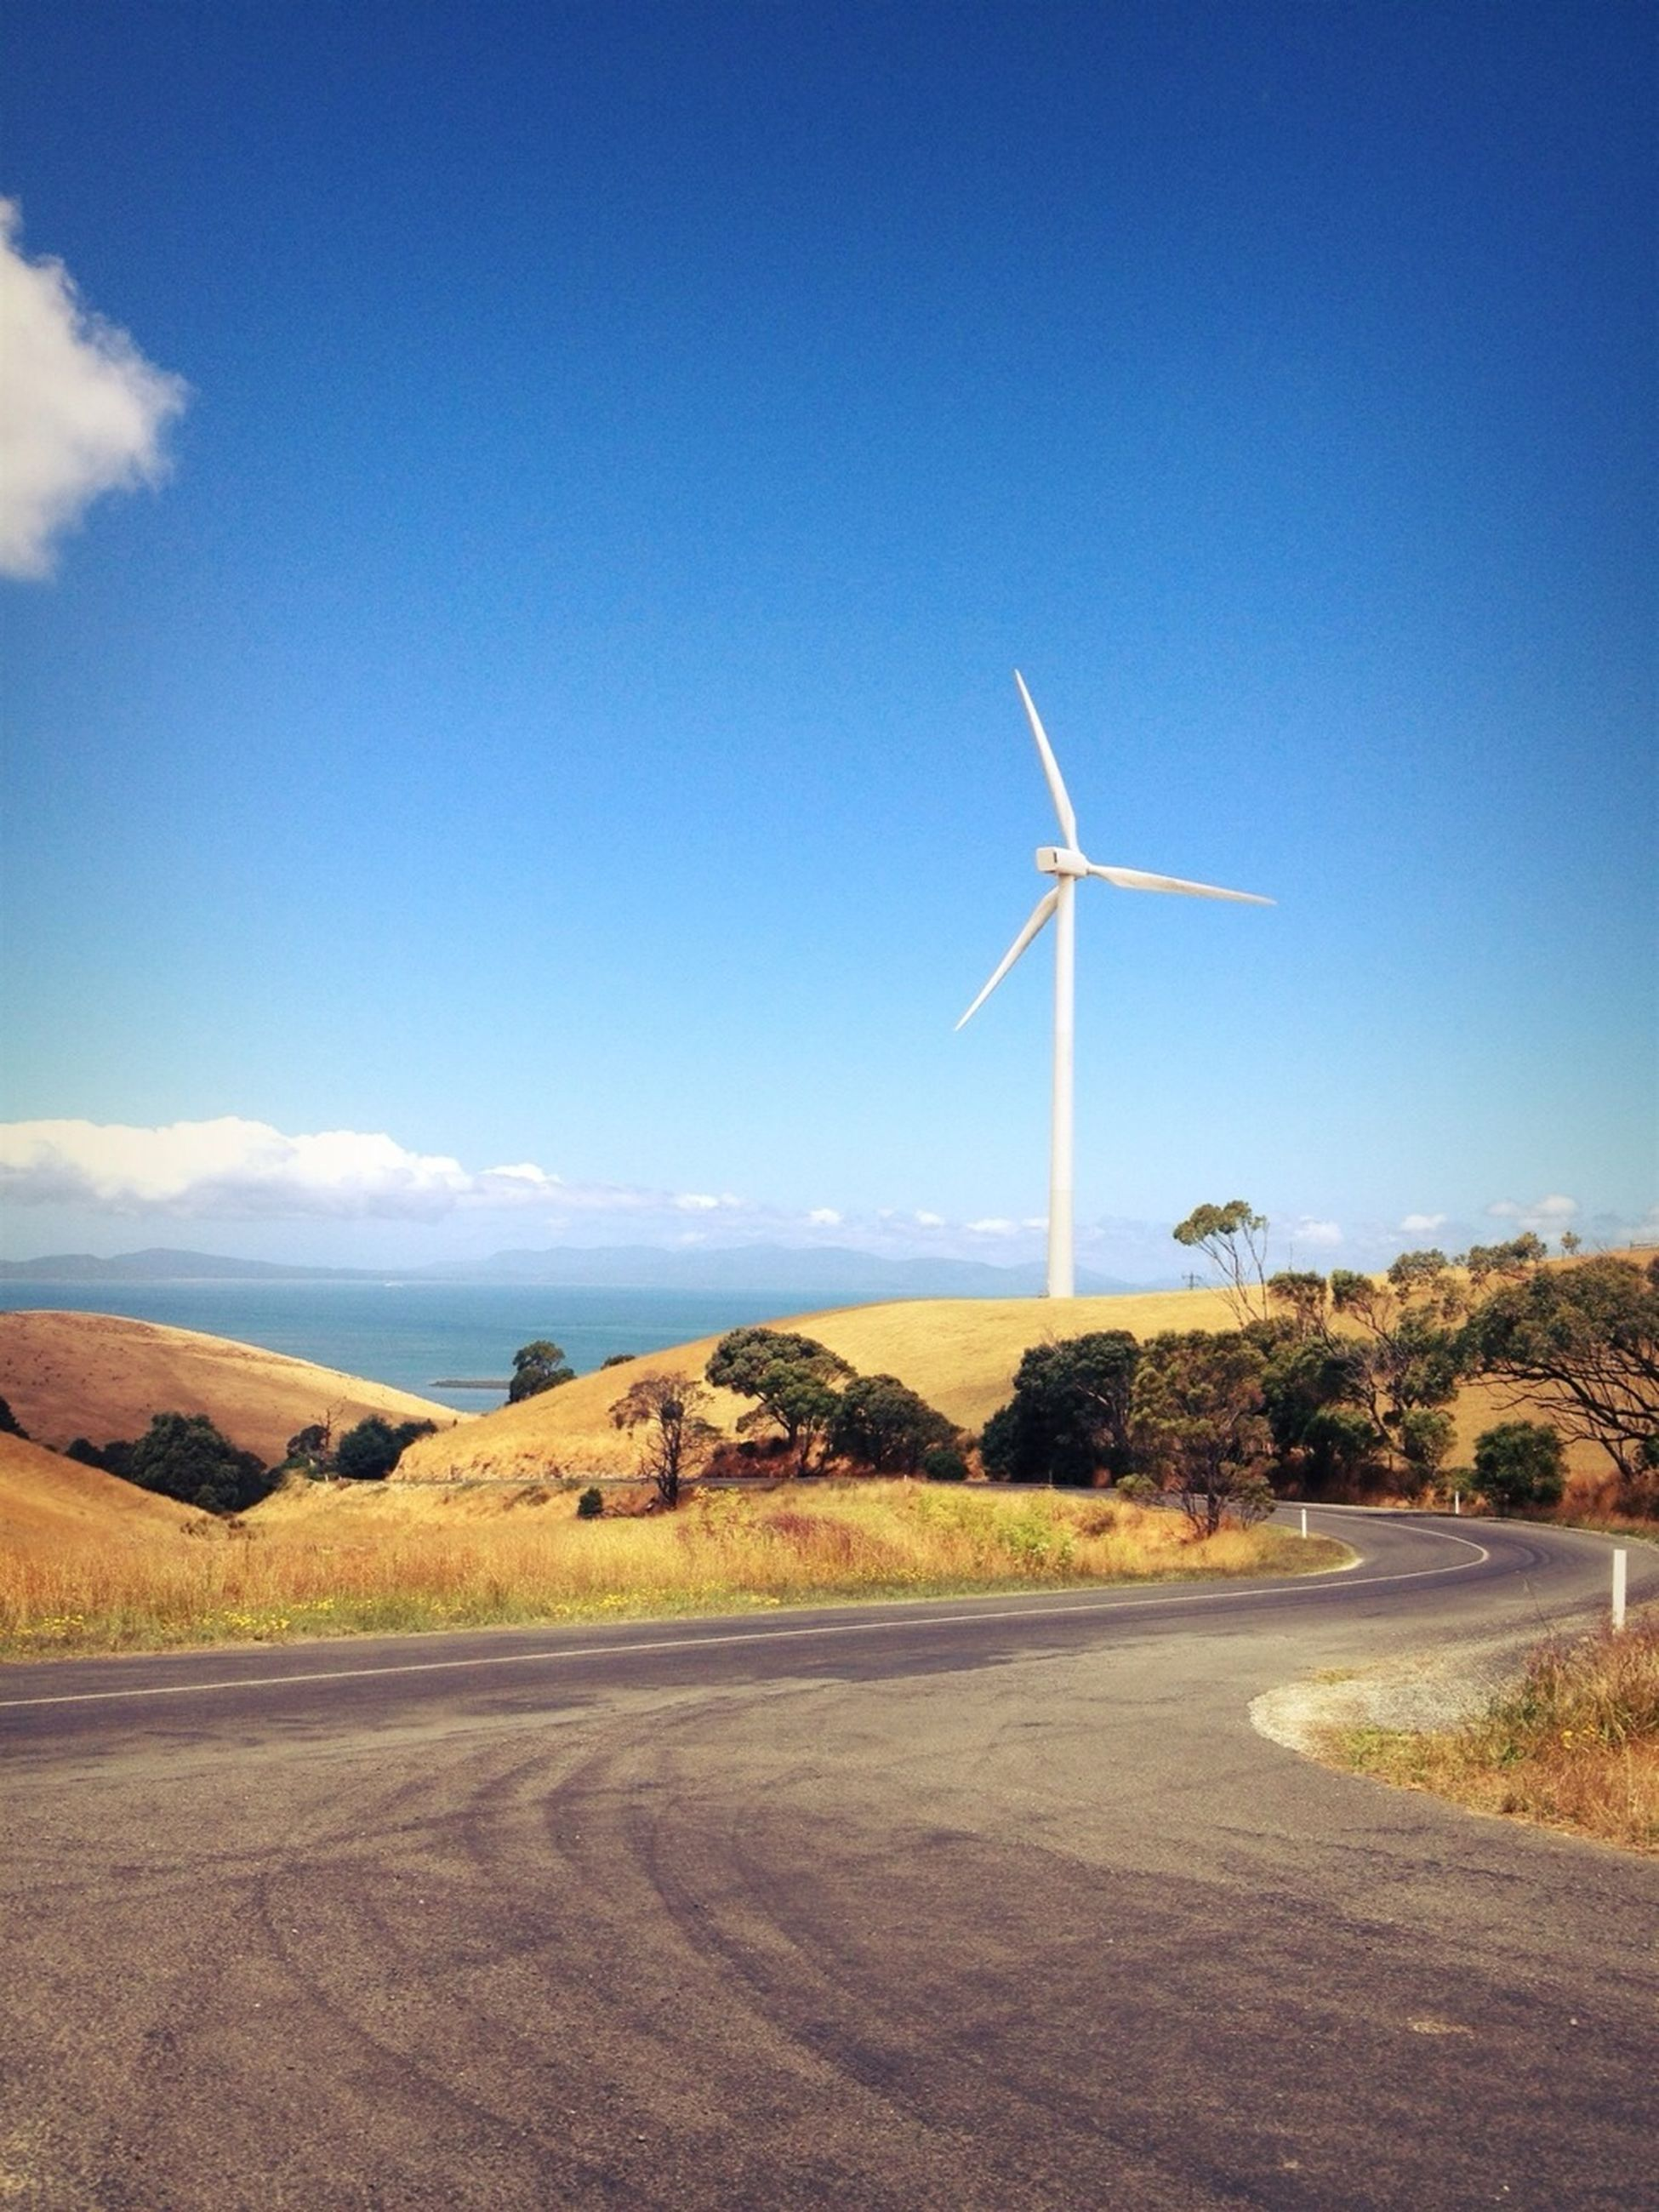 wind power, wind turbine, alternative energy, windmill, renewable energy, environmental conservation, fuel and power generation, landscape, traditional windmill, rural scene, field, technology, sky, blue, tranquil scene, tranquility, nature, road, day, non-urban scene